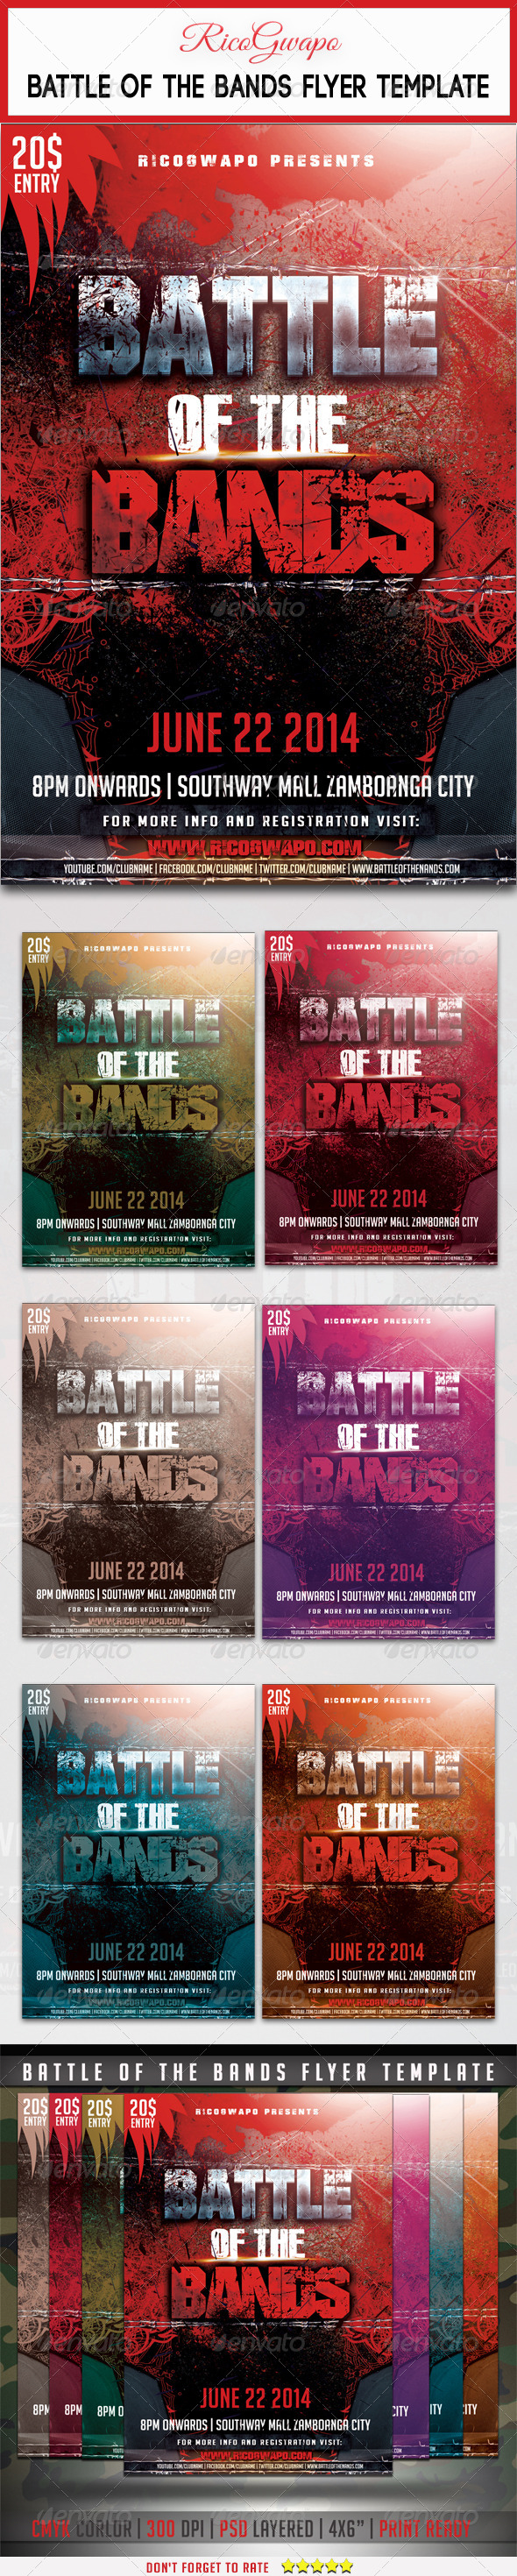 GraphicRiver Battle of the Bands Flyer Template 7606107